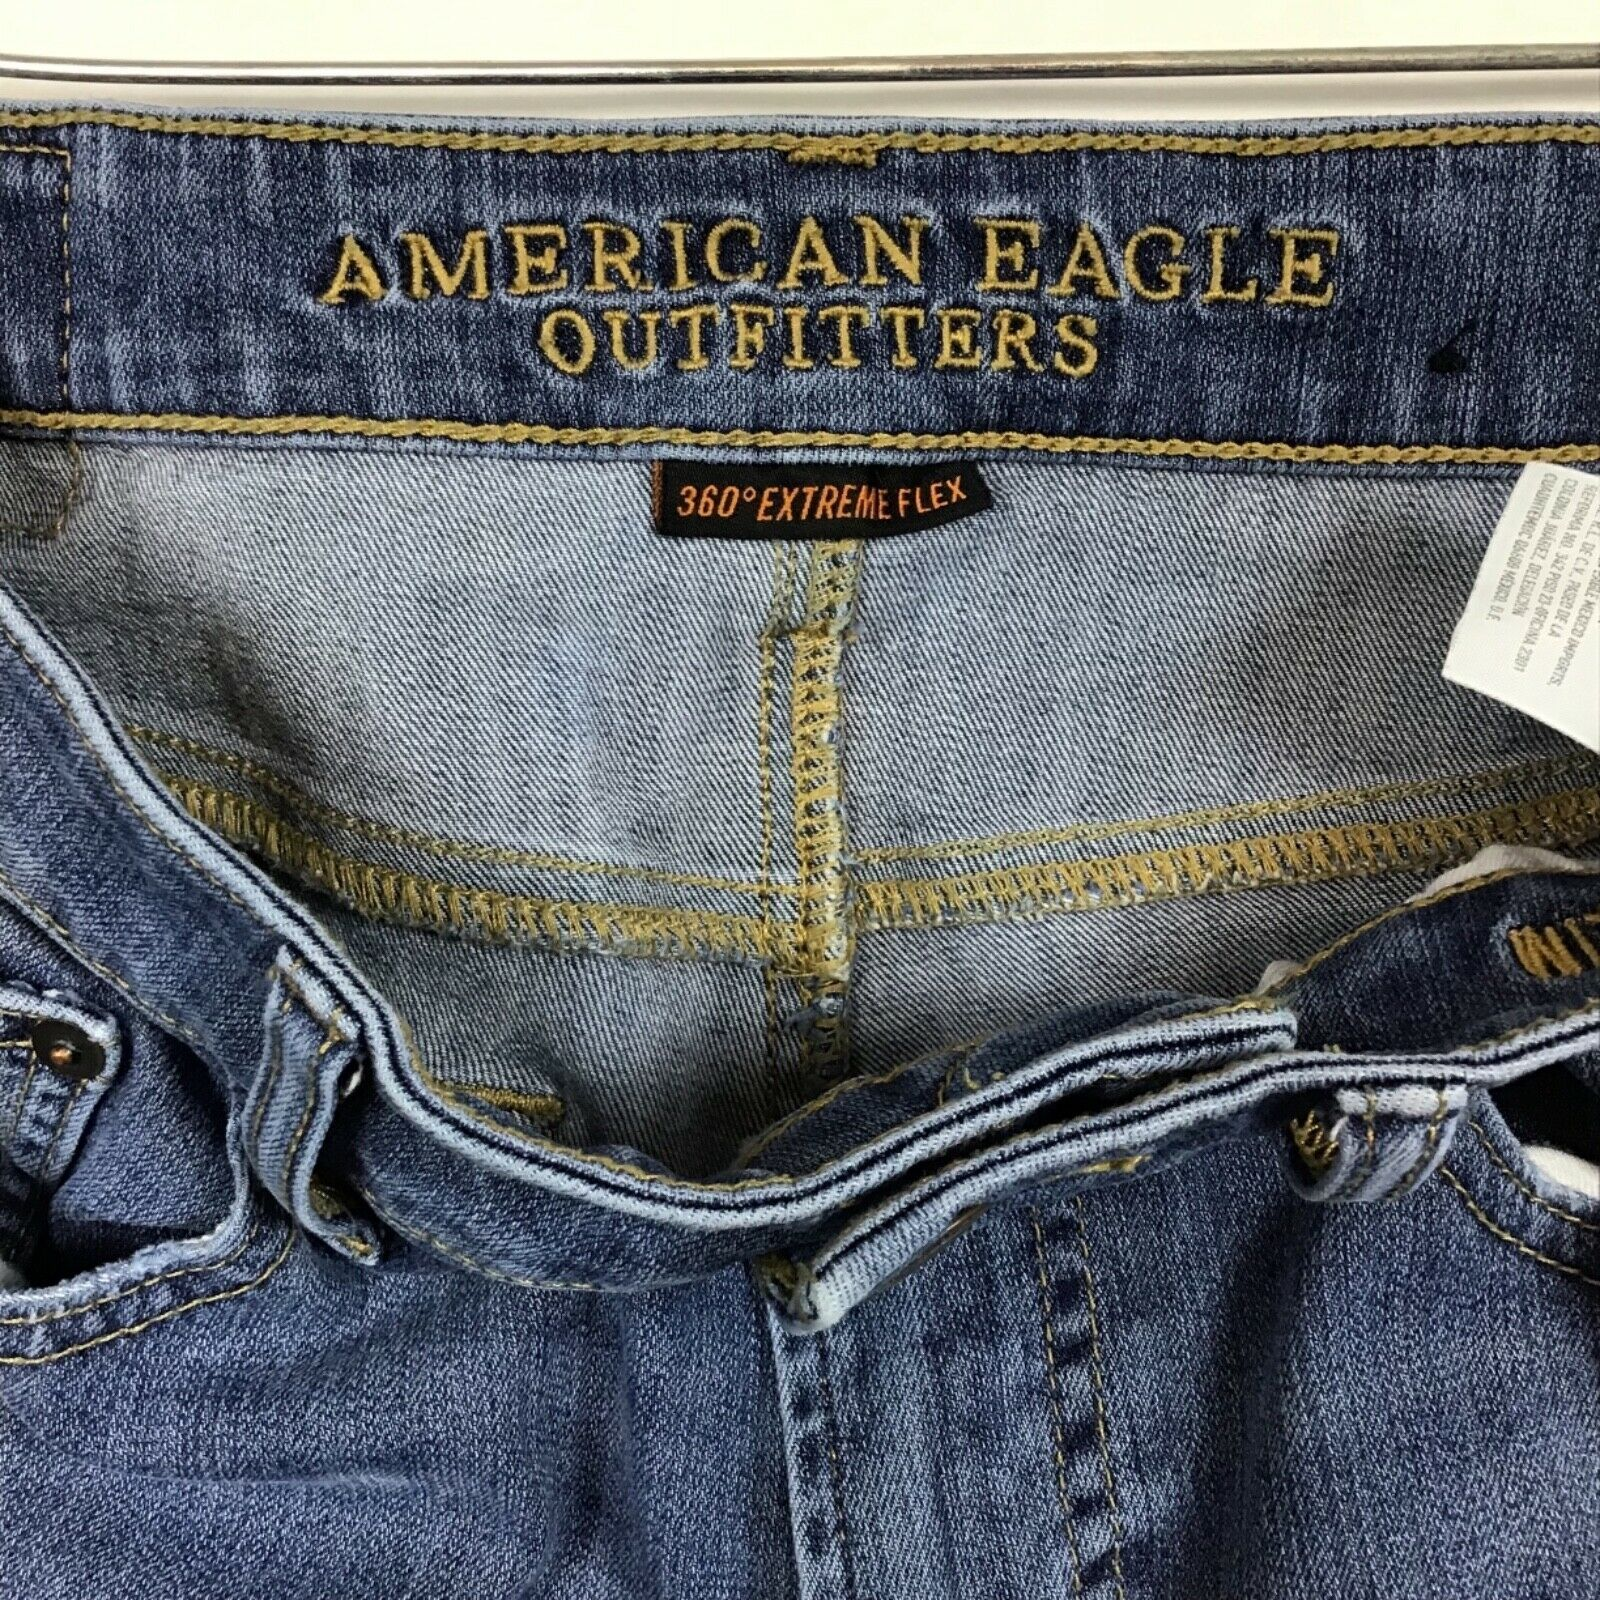 American Eagle Outfittters AEO Mens Denim Jeans 29x30 360 Extreme Flex Stretch   image 6